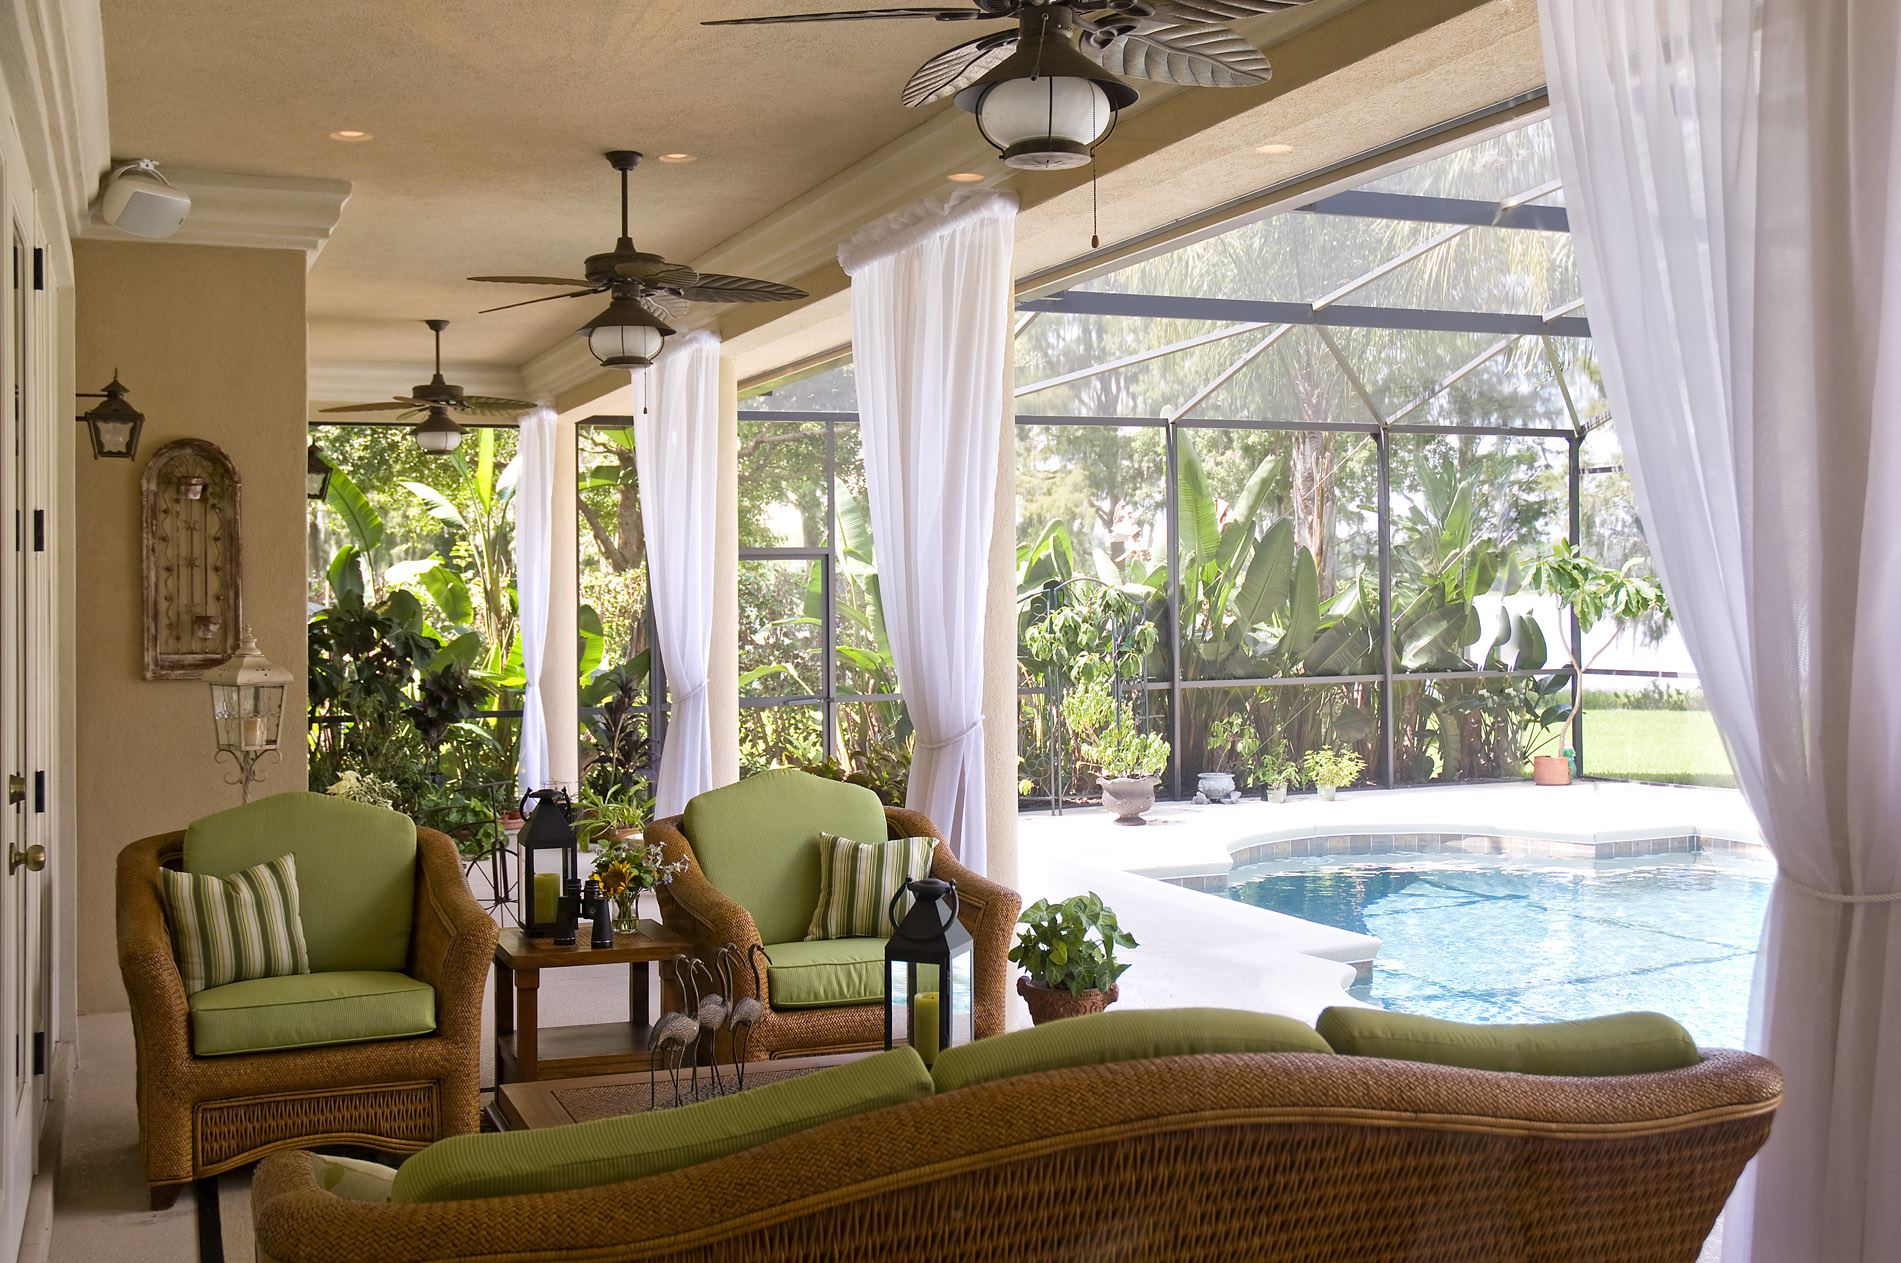 Heidi s hints great design is about more than beautiful for Small lanai decorating ideas